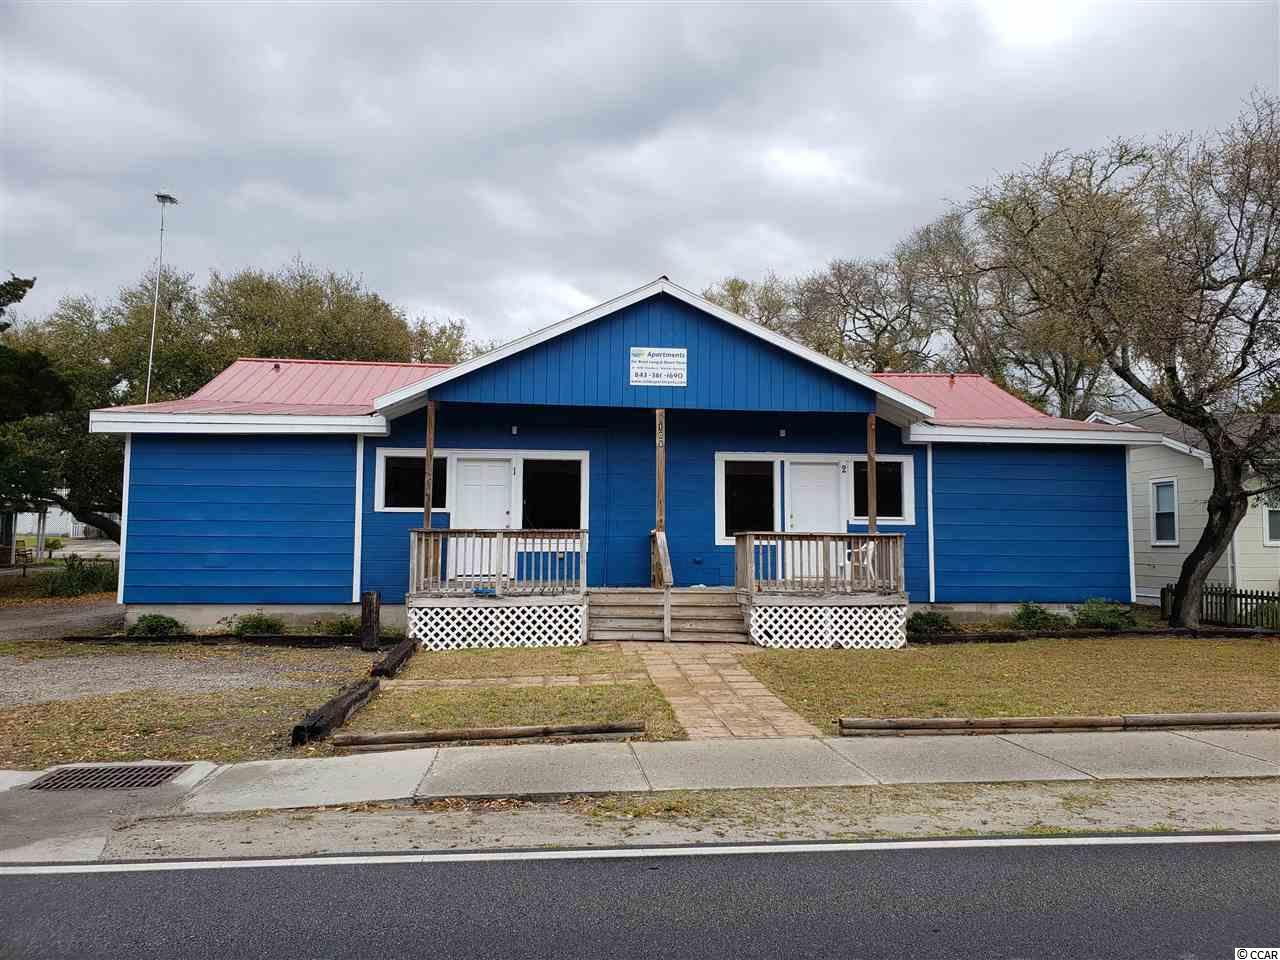 5 units structure built on a double commercial lot a block from the ocean and a short walk from Main St. in NMB.  The property was completely rebuilt in 2014.  New HVAC units, new metal roof, all is up to code. Four 1 BR / 1 bath units and one 2 BR / 2 bath units. Short term and long term rentals are allowed.  ***seller financing is available with an accepted offer.***